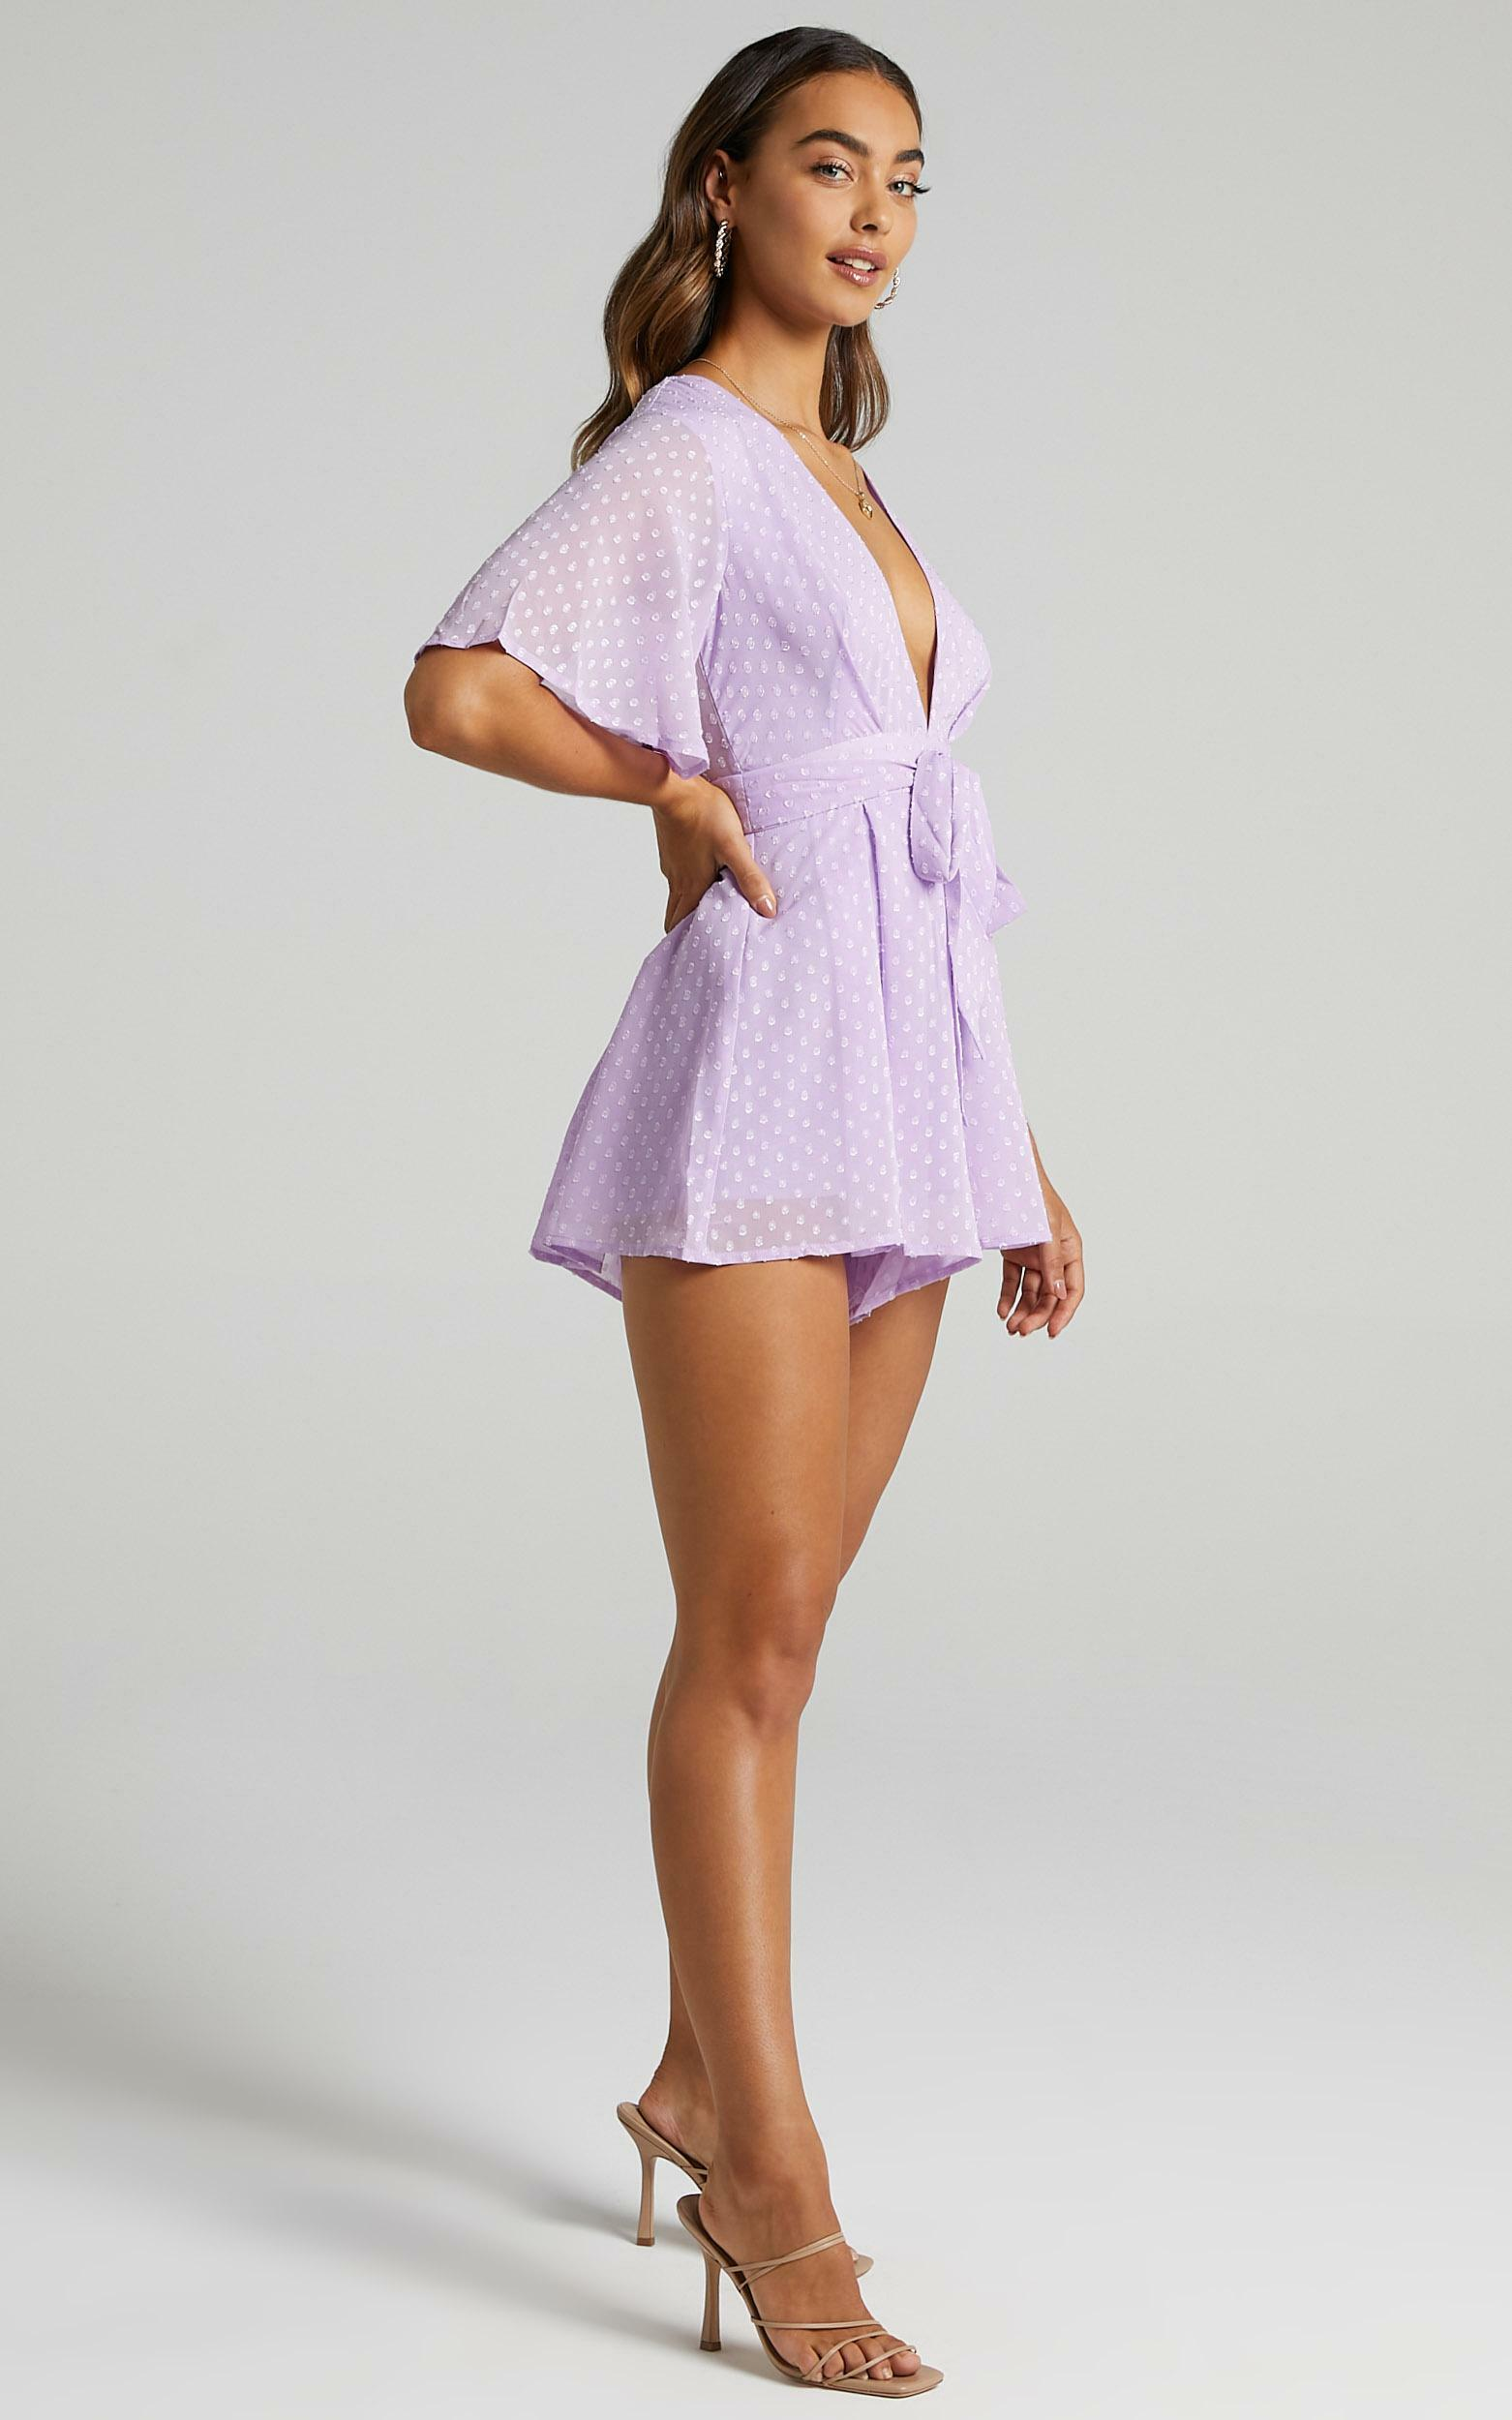 Chains Hit My Chest Playsuit In Lilac - 6 (XS), PRP3, hi-res image number null